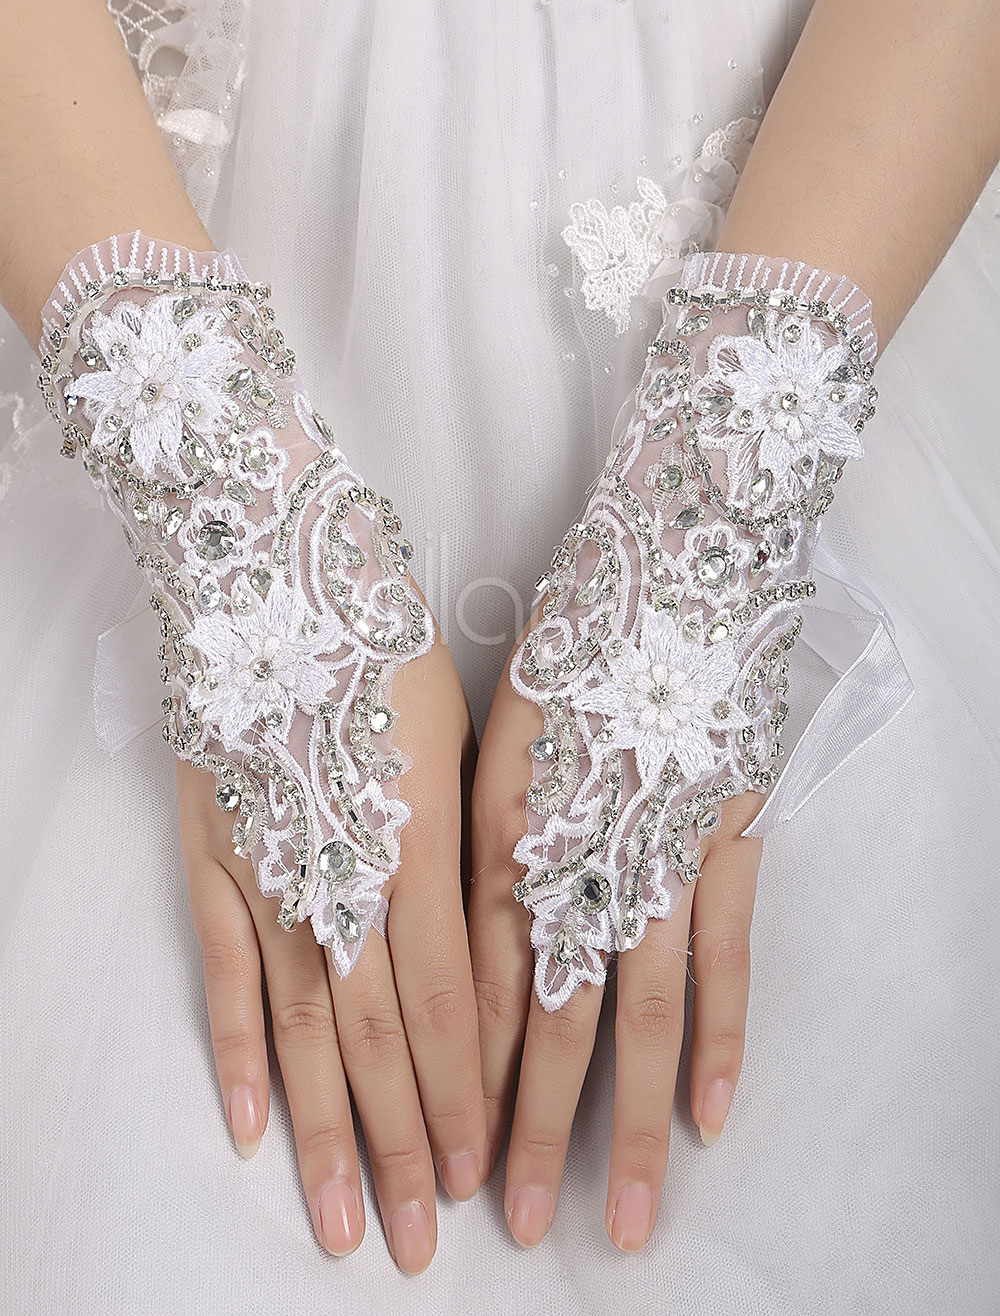 1a4eea2fa6b ... Short Wedding Gloves White Fingerless Lace Applique Rhinestones Beaded  Bridal Gloves-No.3. 1. 30%OFF. Color White